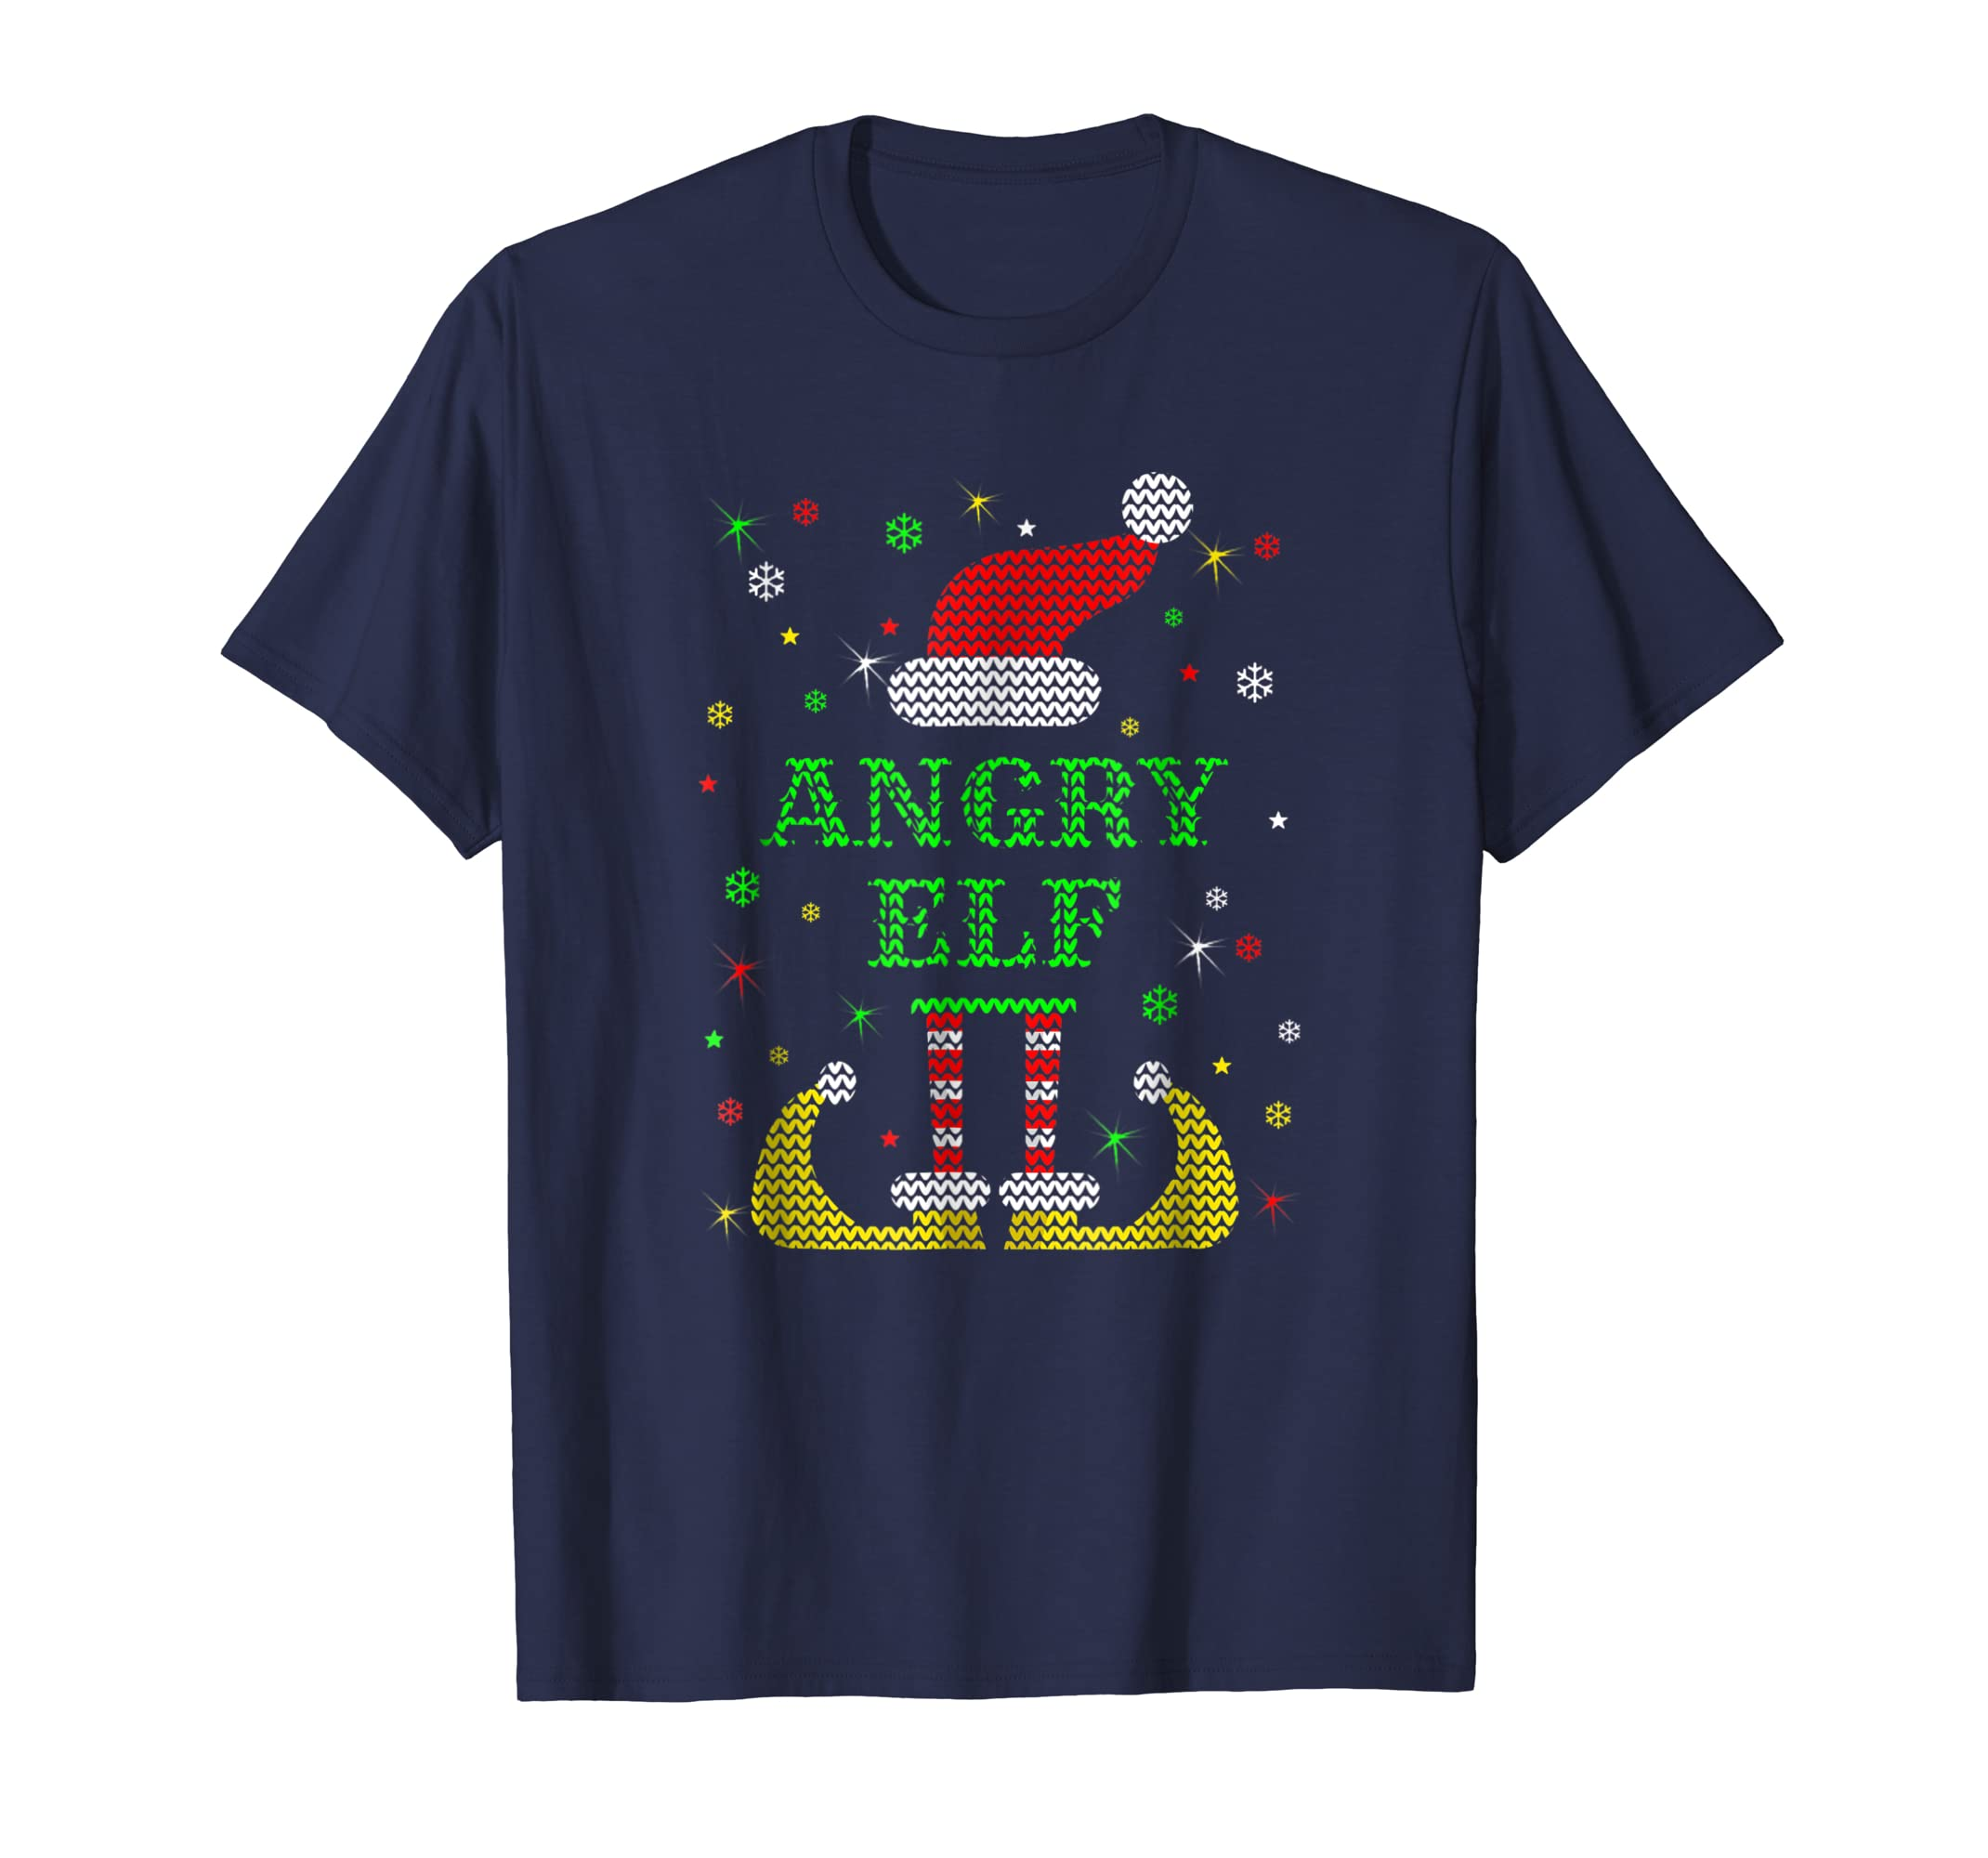 Angry Elf Tshirt in Ugly Christmas Style-azvn